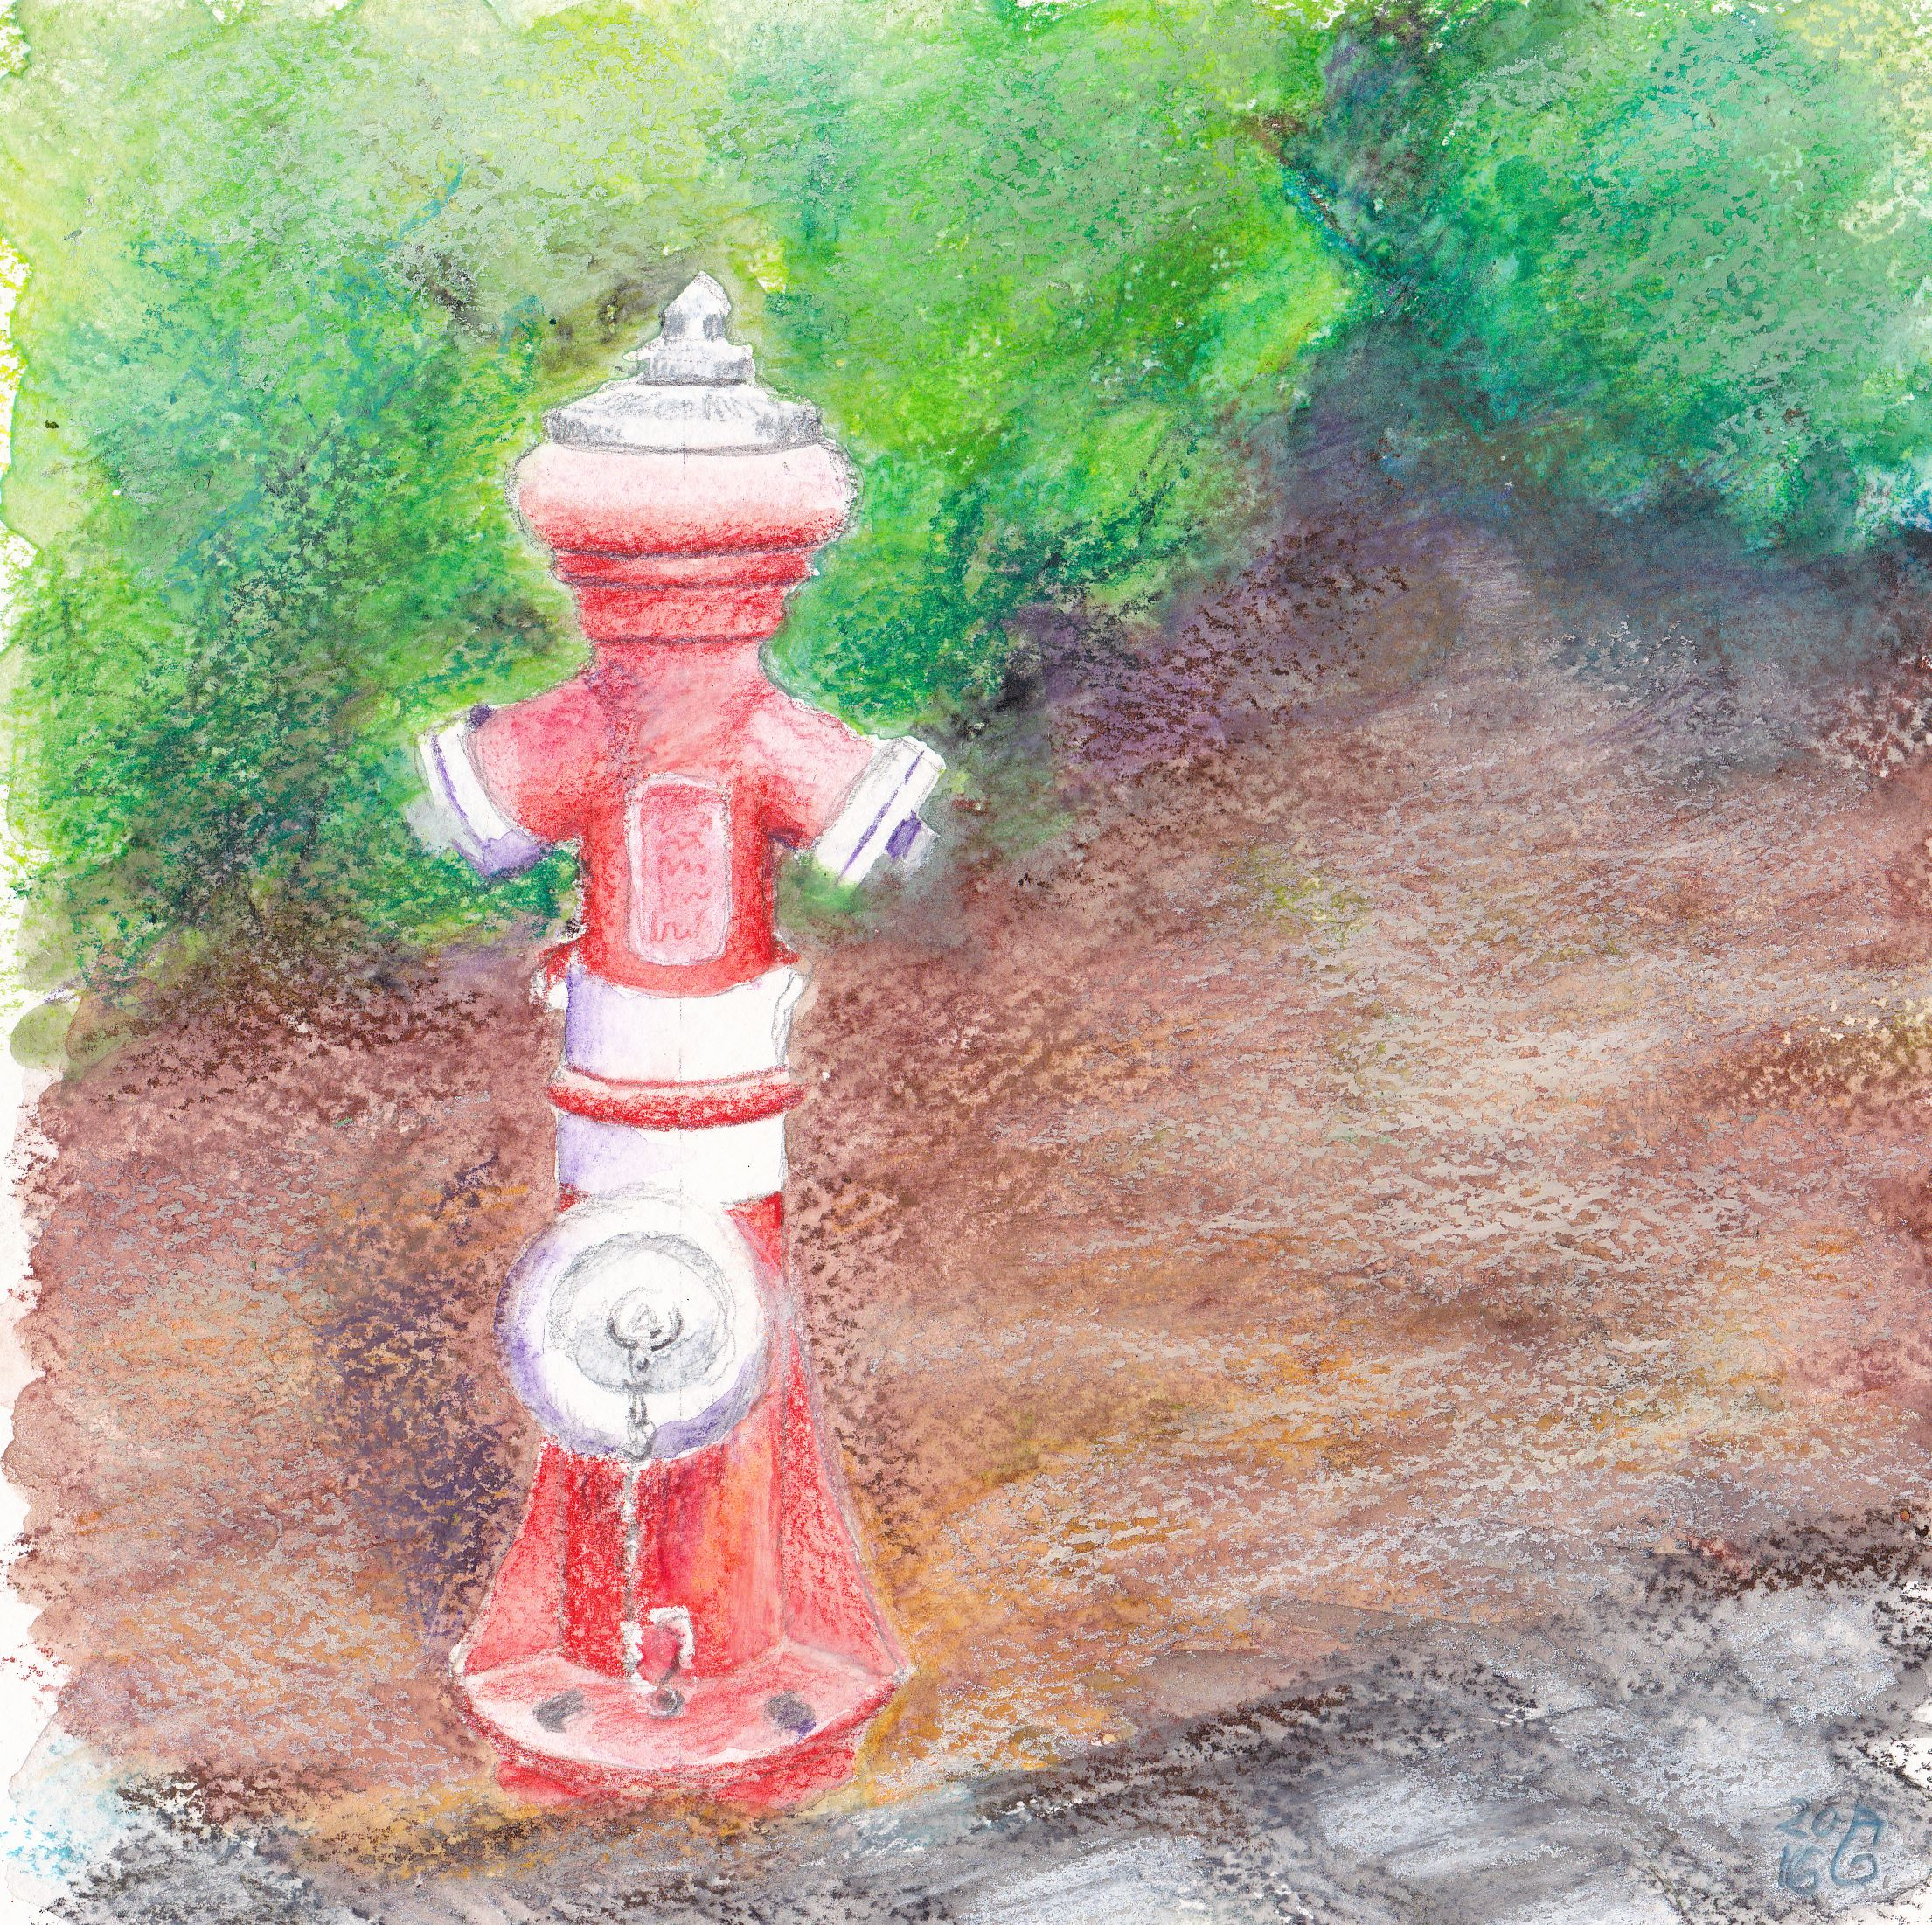 Hooked on hydrants